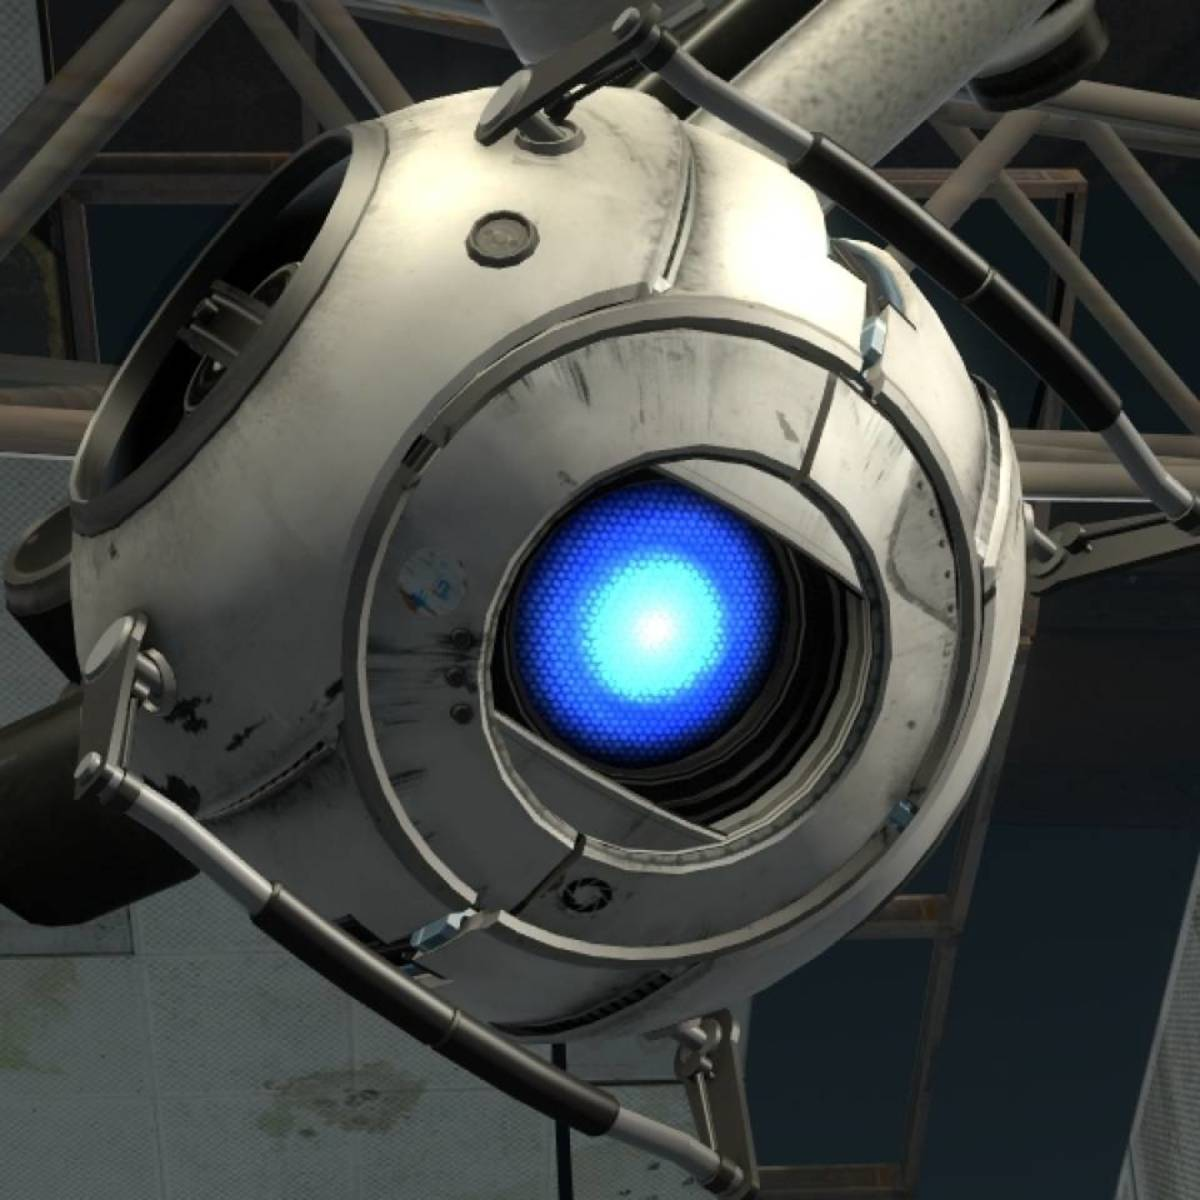 Wheatley in Portal 2